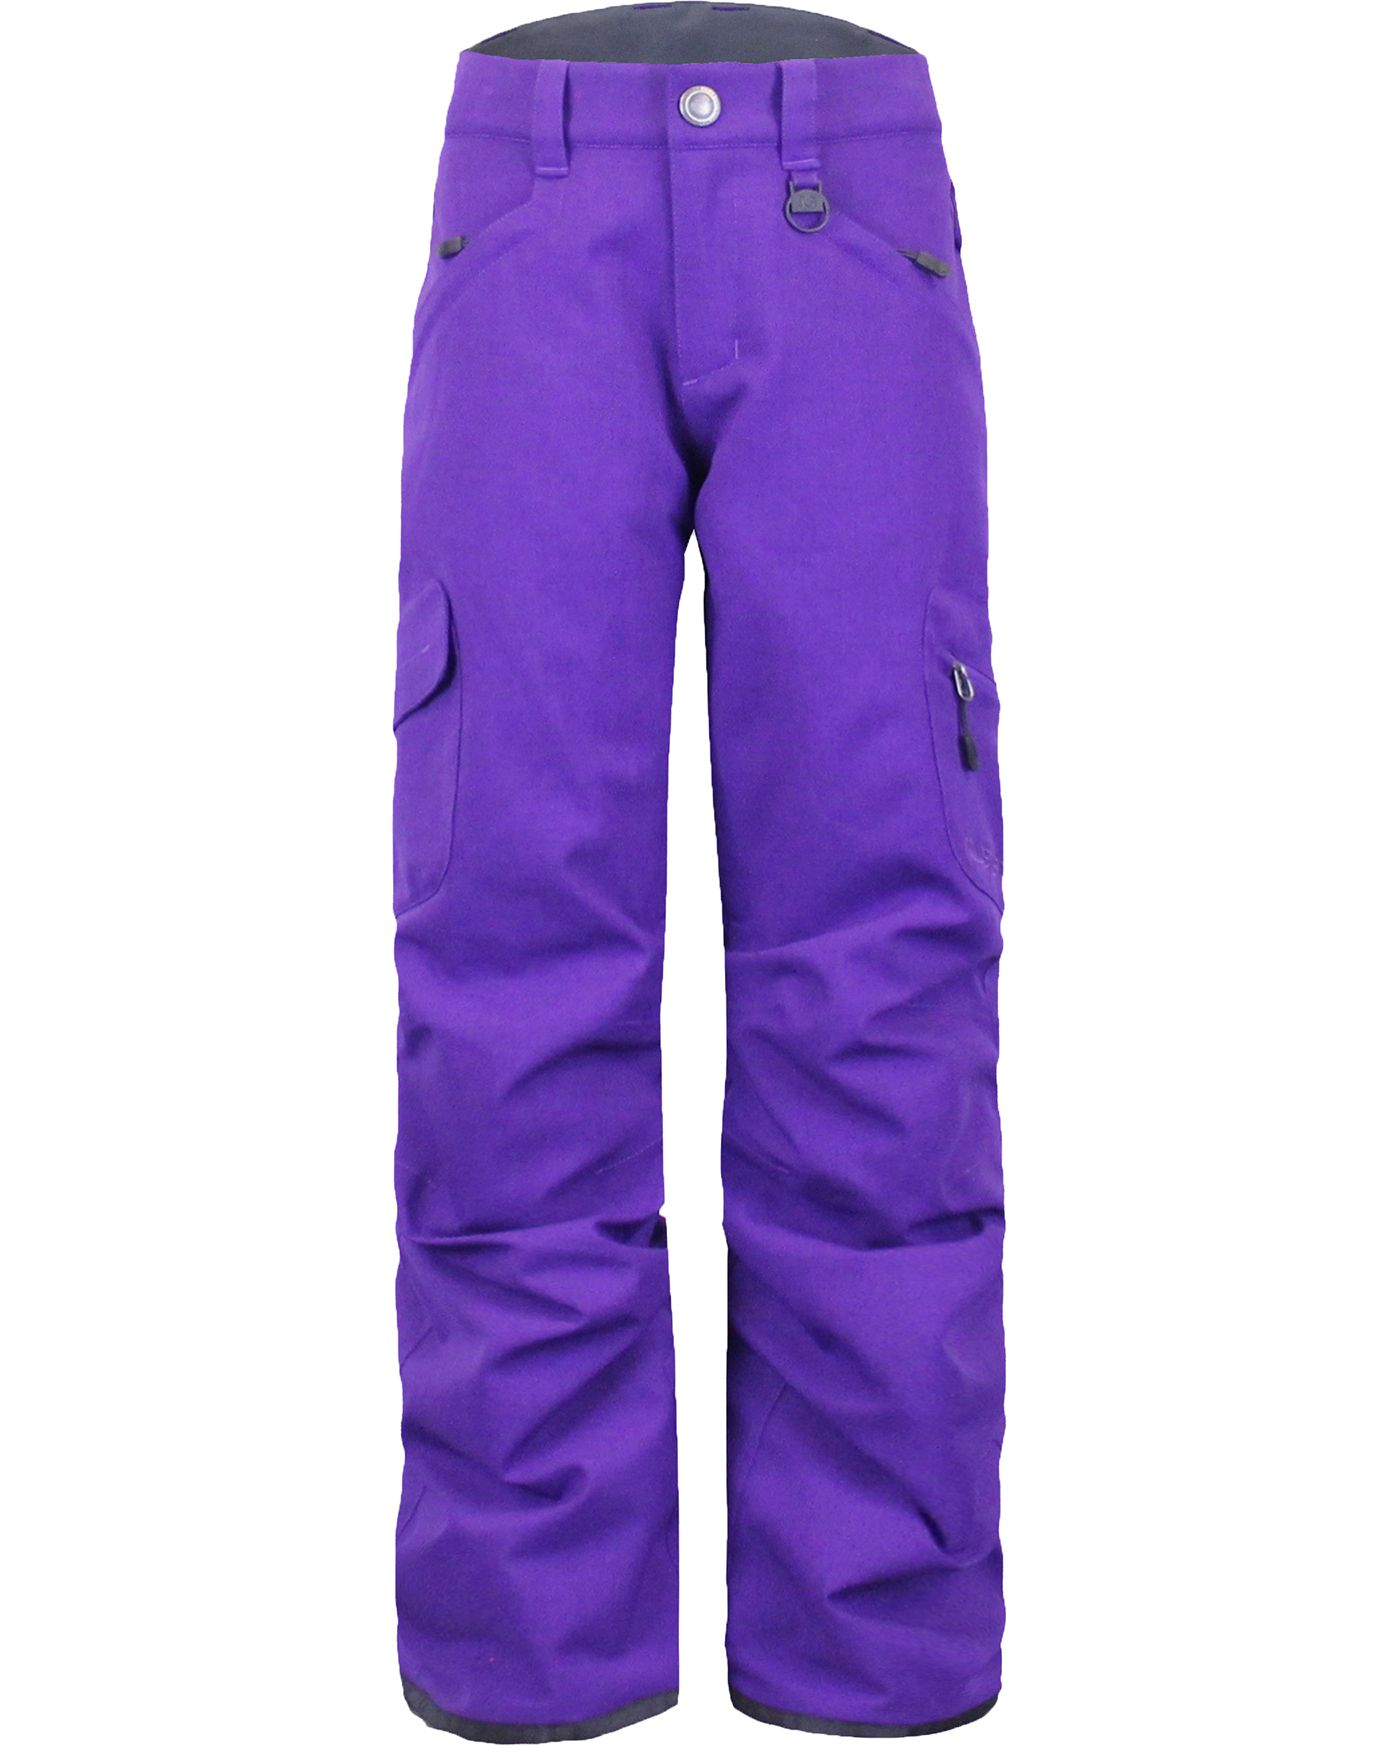 Boulder Gear Girls' Ravish Insulated Pants